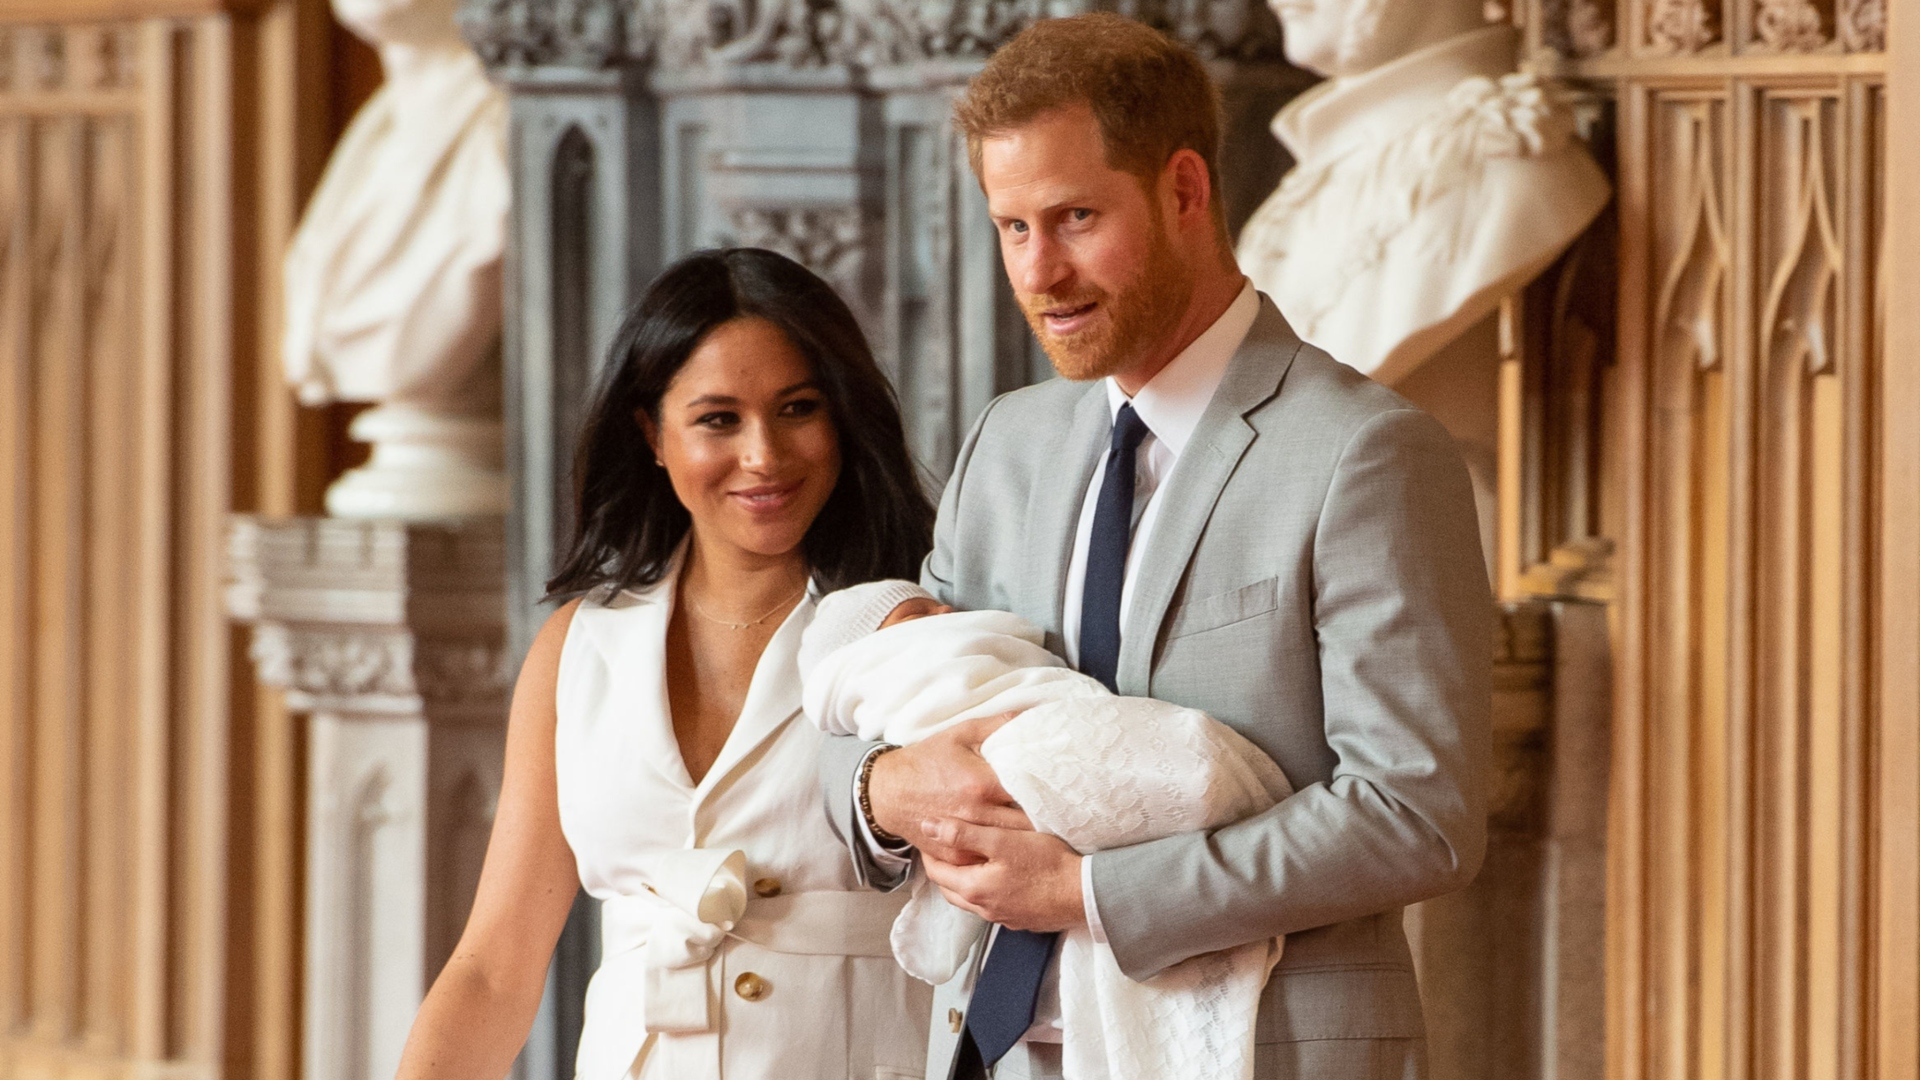 Prince Harry and Meghan Markle falls prey to Internet hacking: the couple's private snaps are leaked online